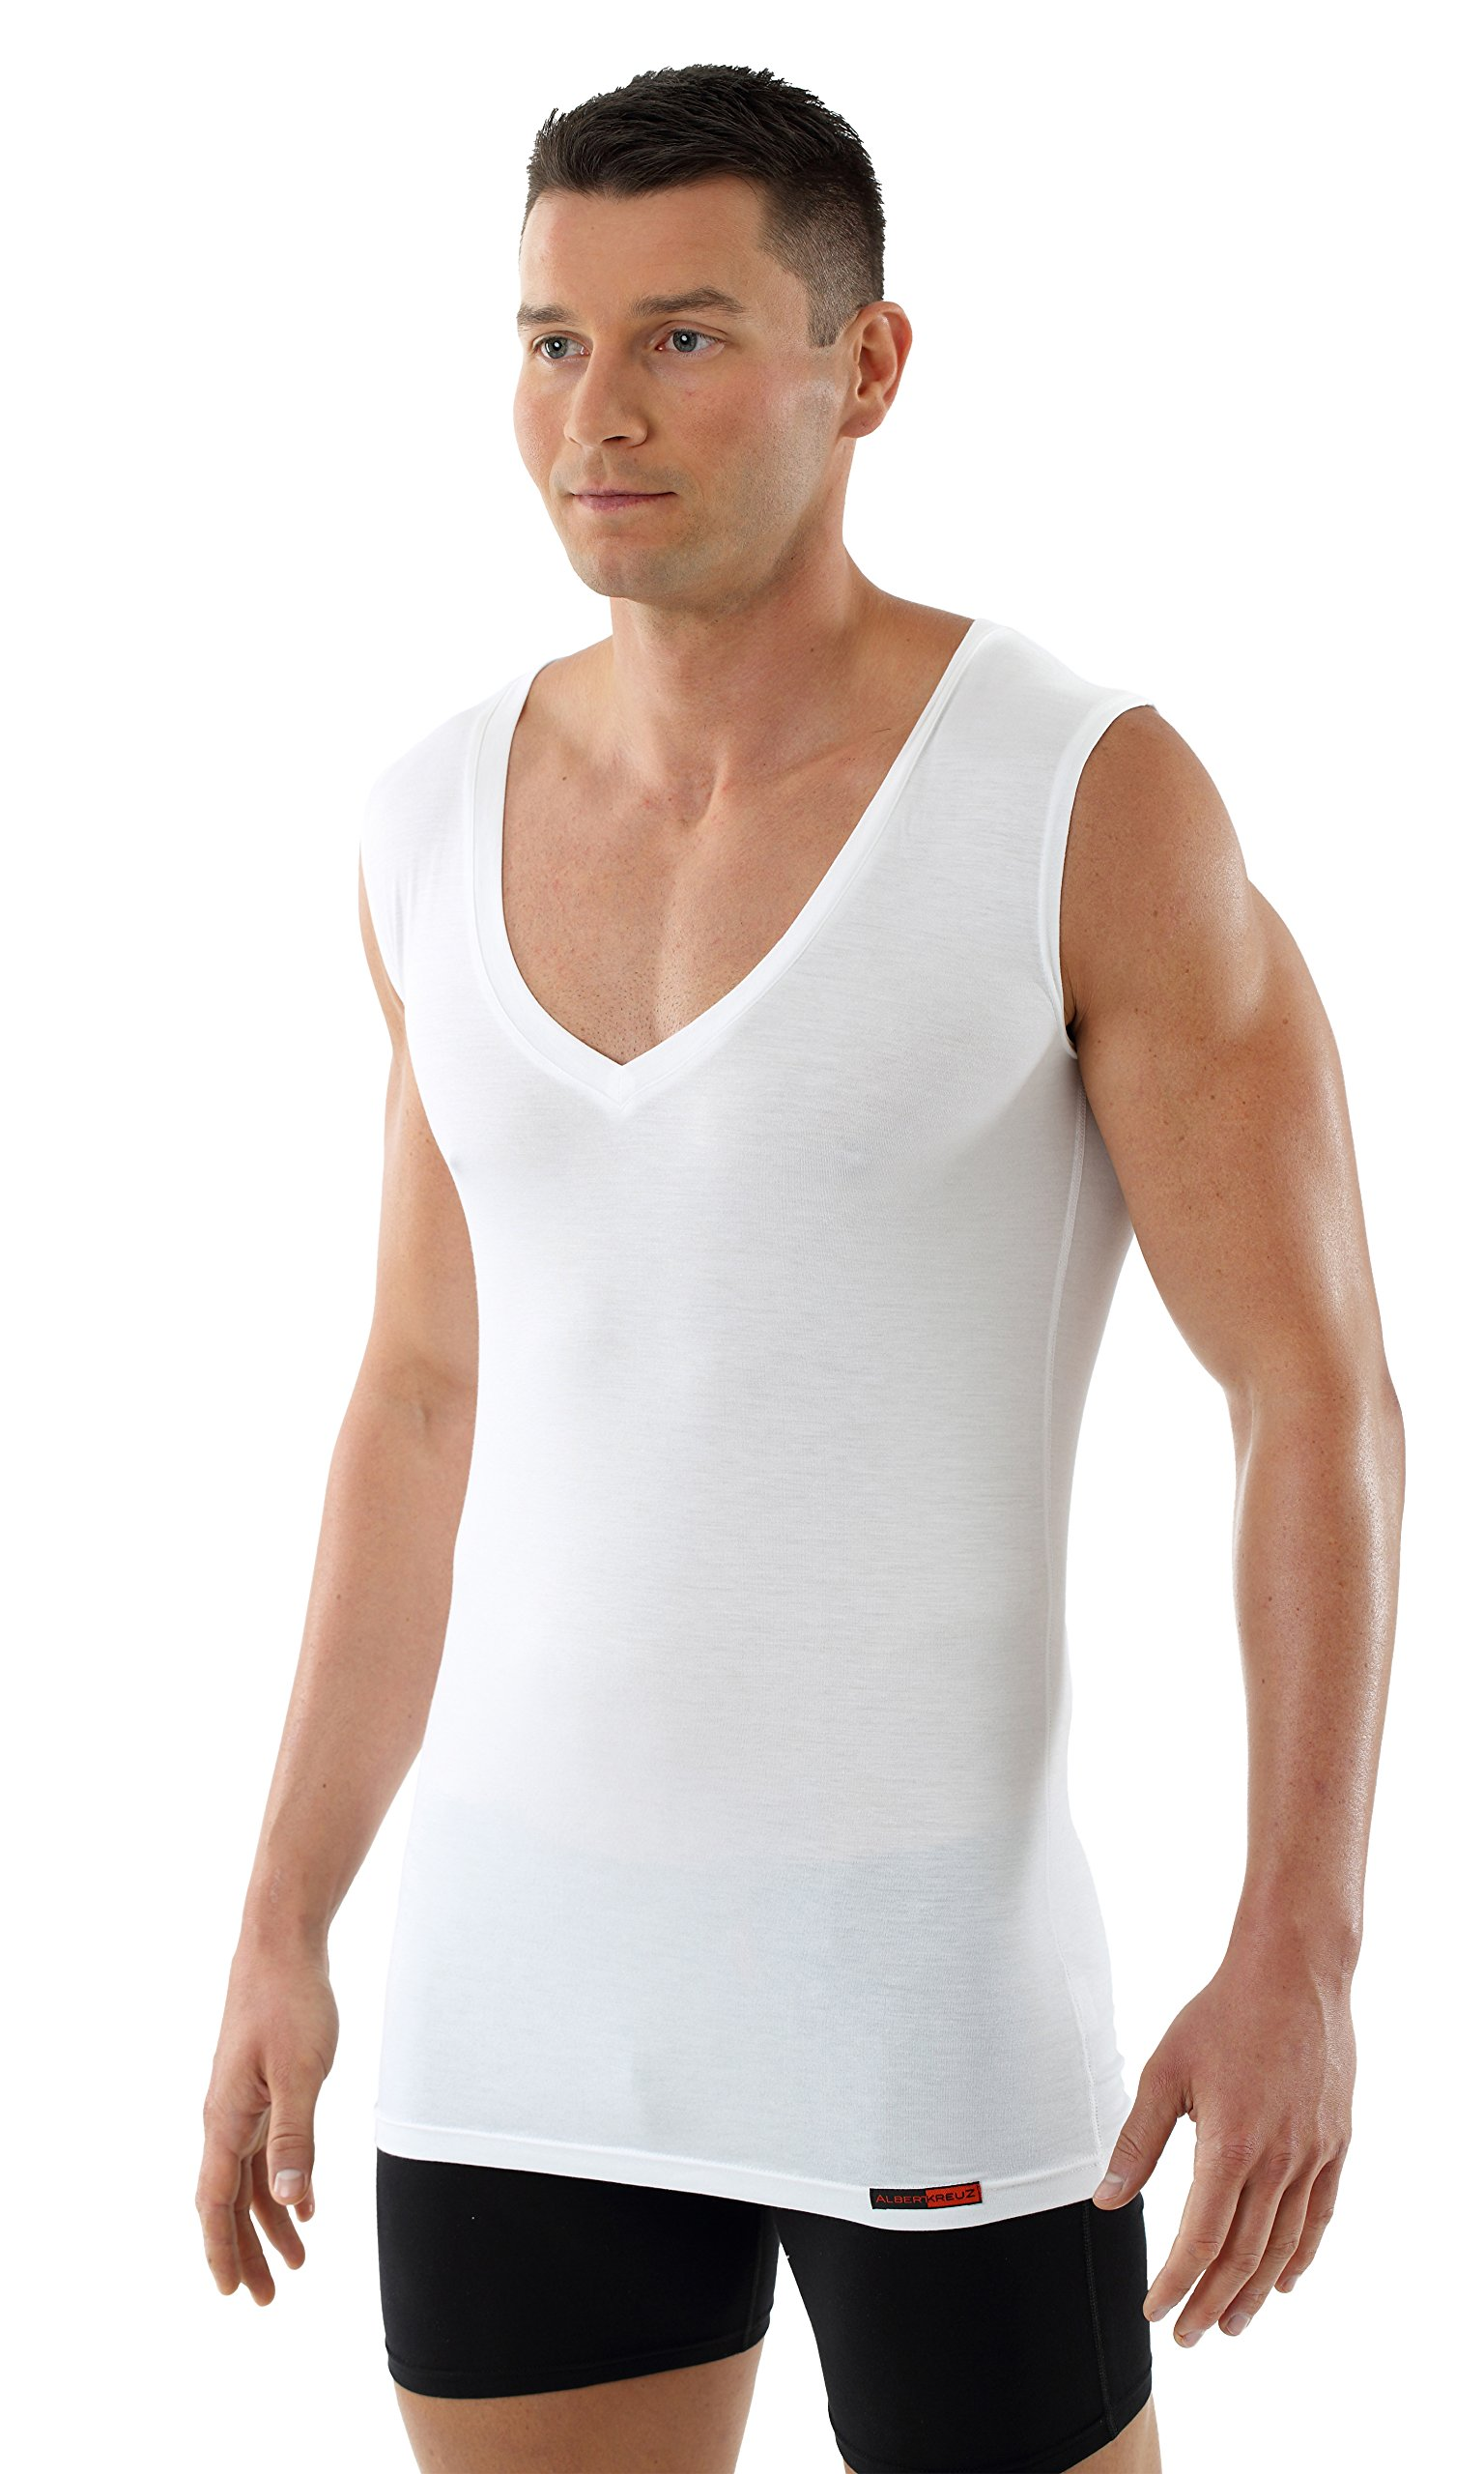 ALBERT KREUZ Men's Sleeveless deep V-Neck Business Undershirt of Breathable Micromodal Light White XXL